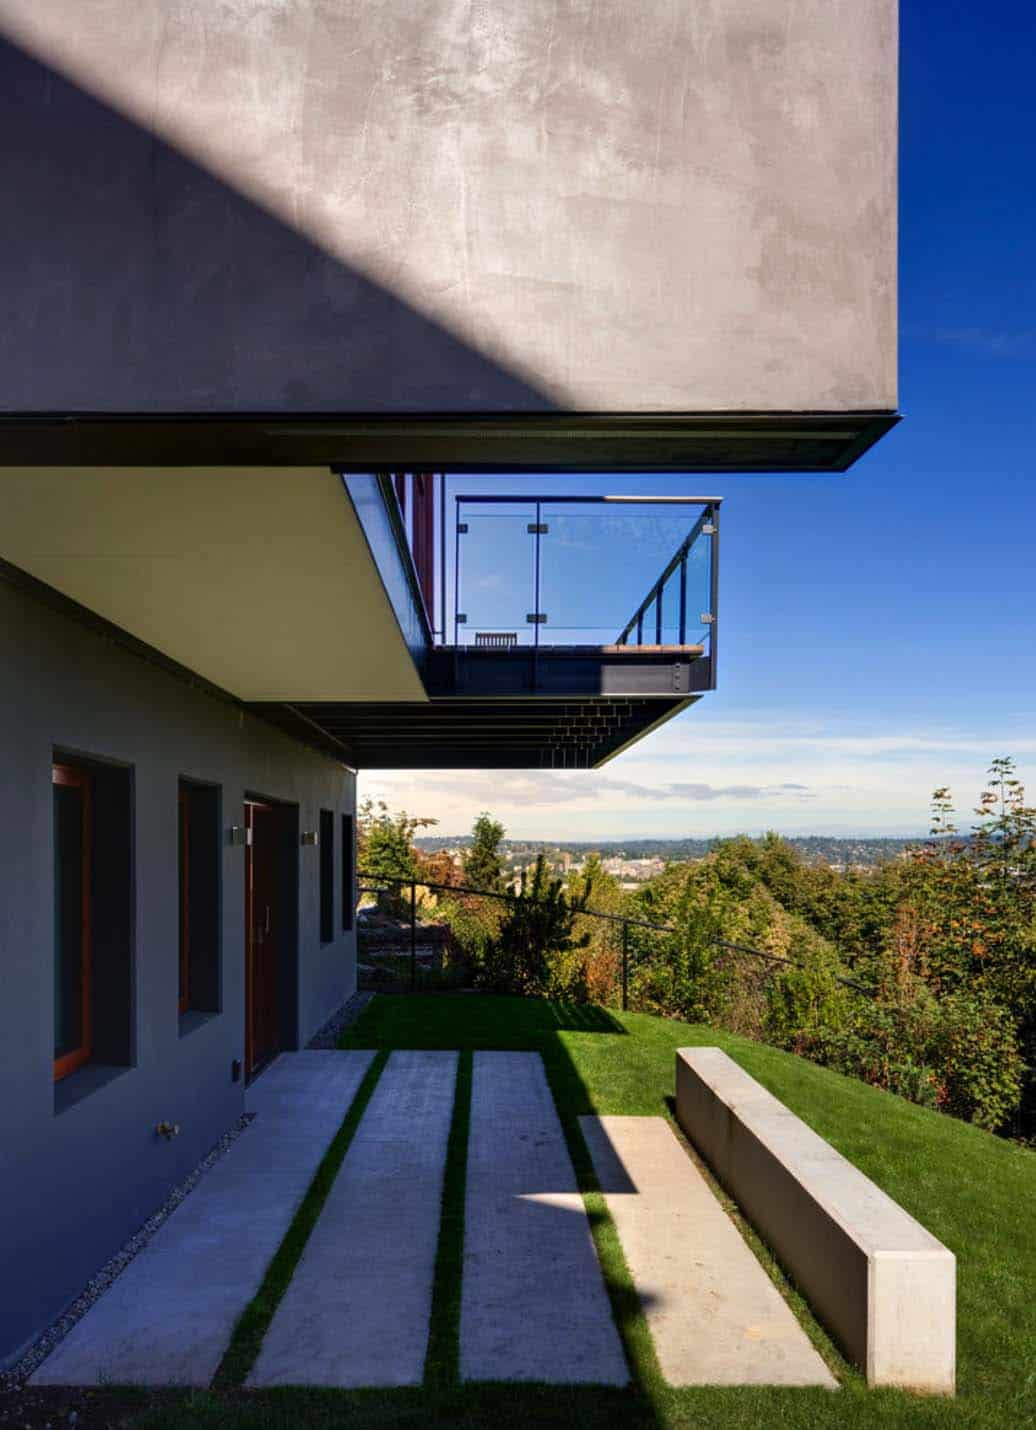 Sustainable Urban Home-Prentiss Balance Wickline Architects-22-1 Kindesign